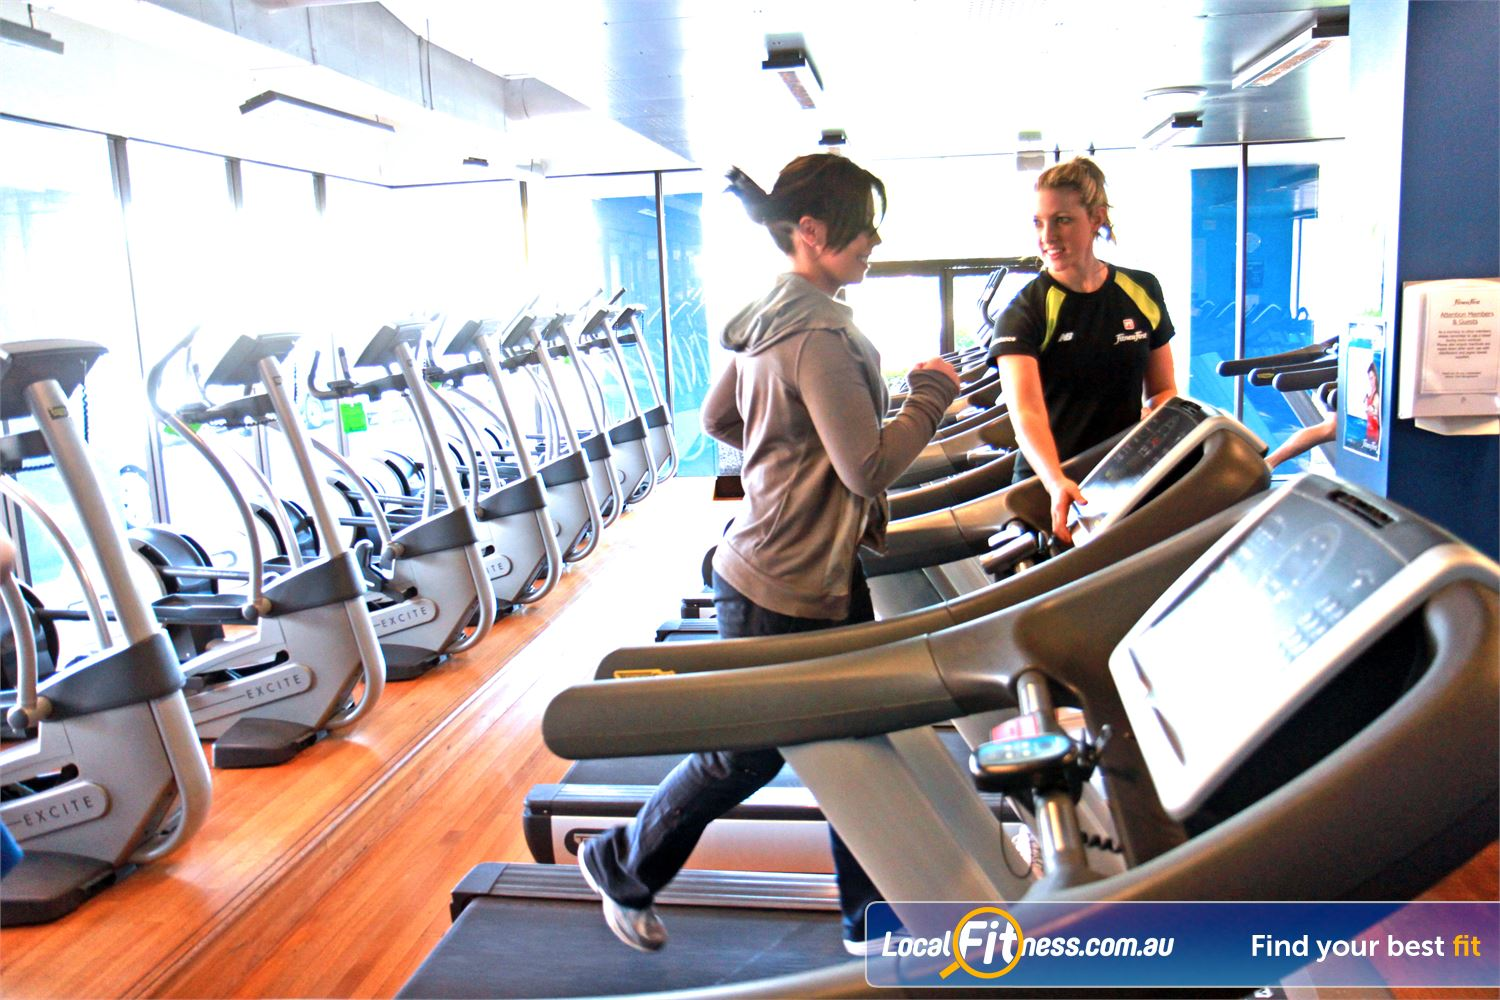 Goodlife Health Clubs Mount Gravatt Our supportive team can take you through a BASICS Cardio session.